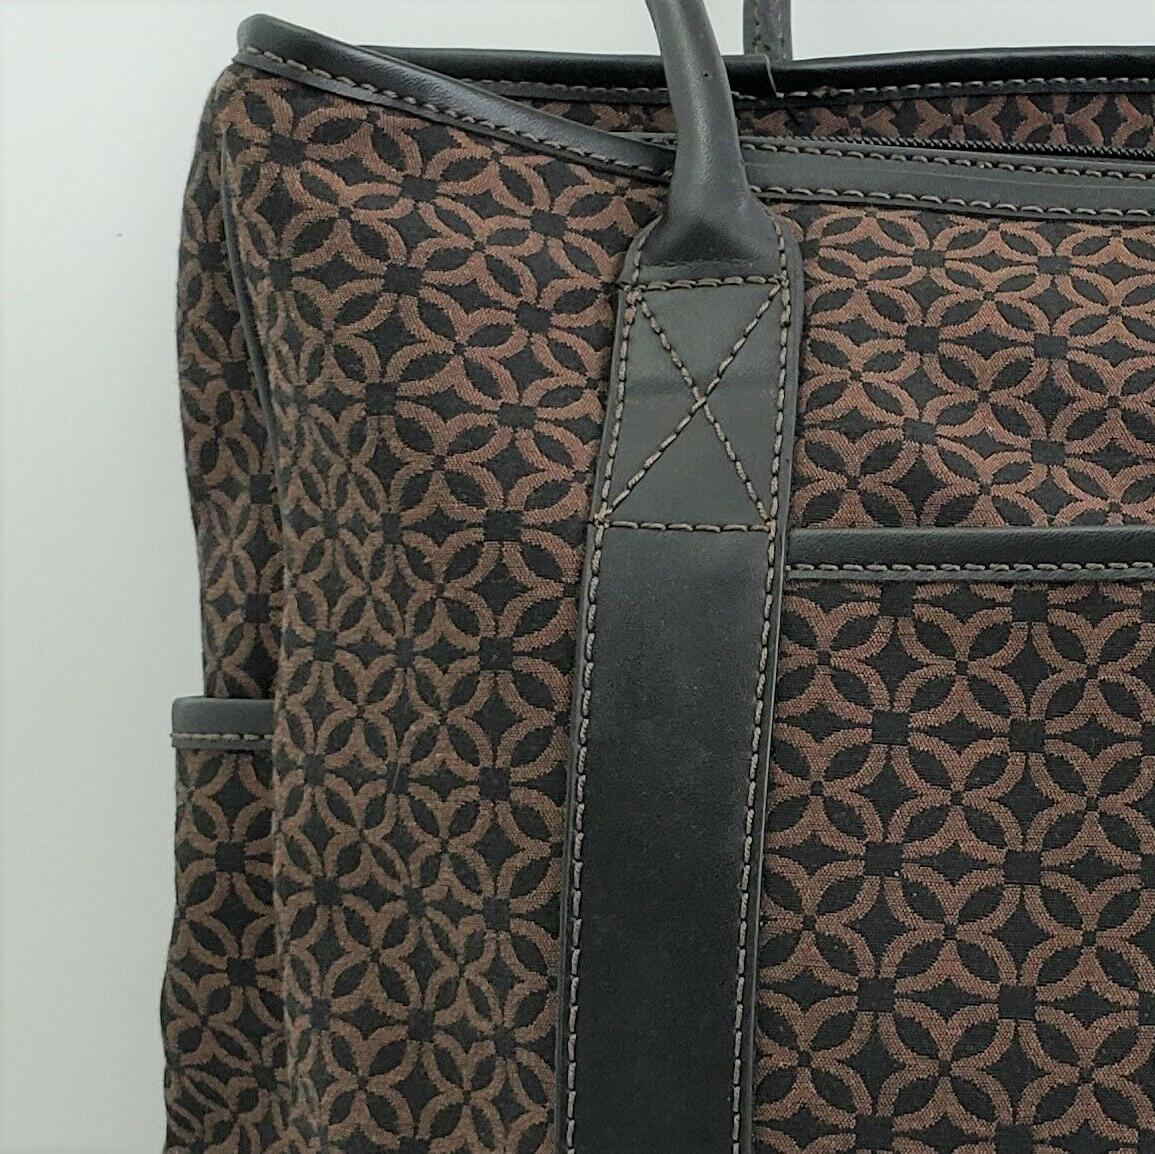 RELIC by Laptop Tote Compartments